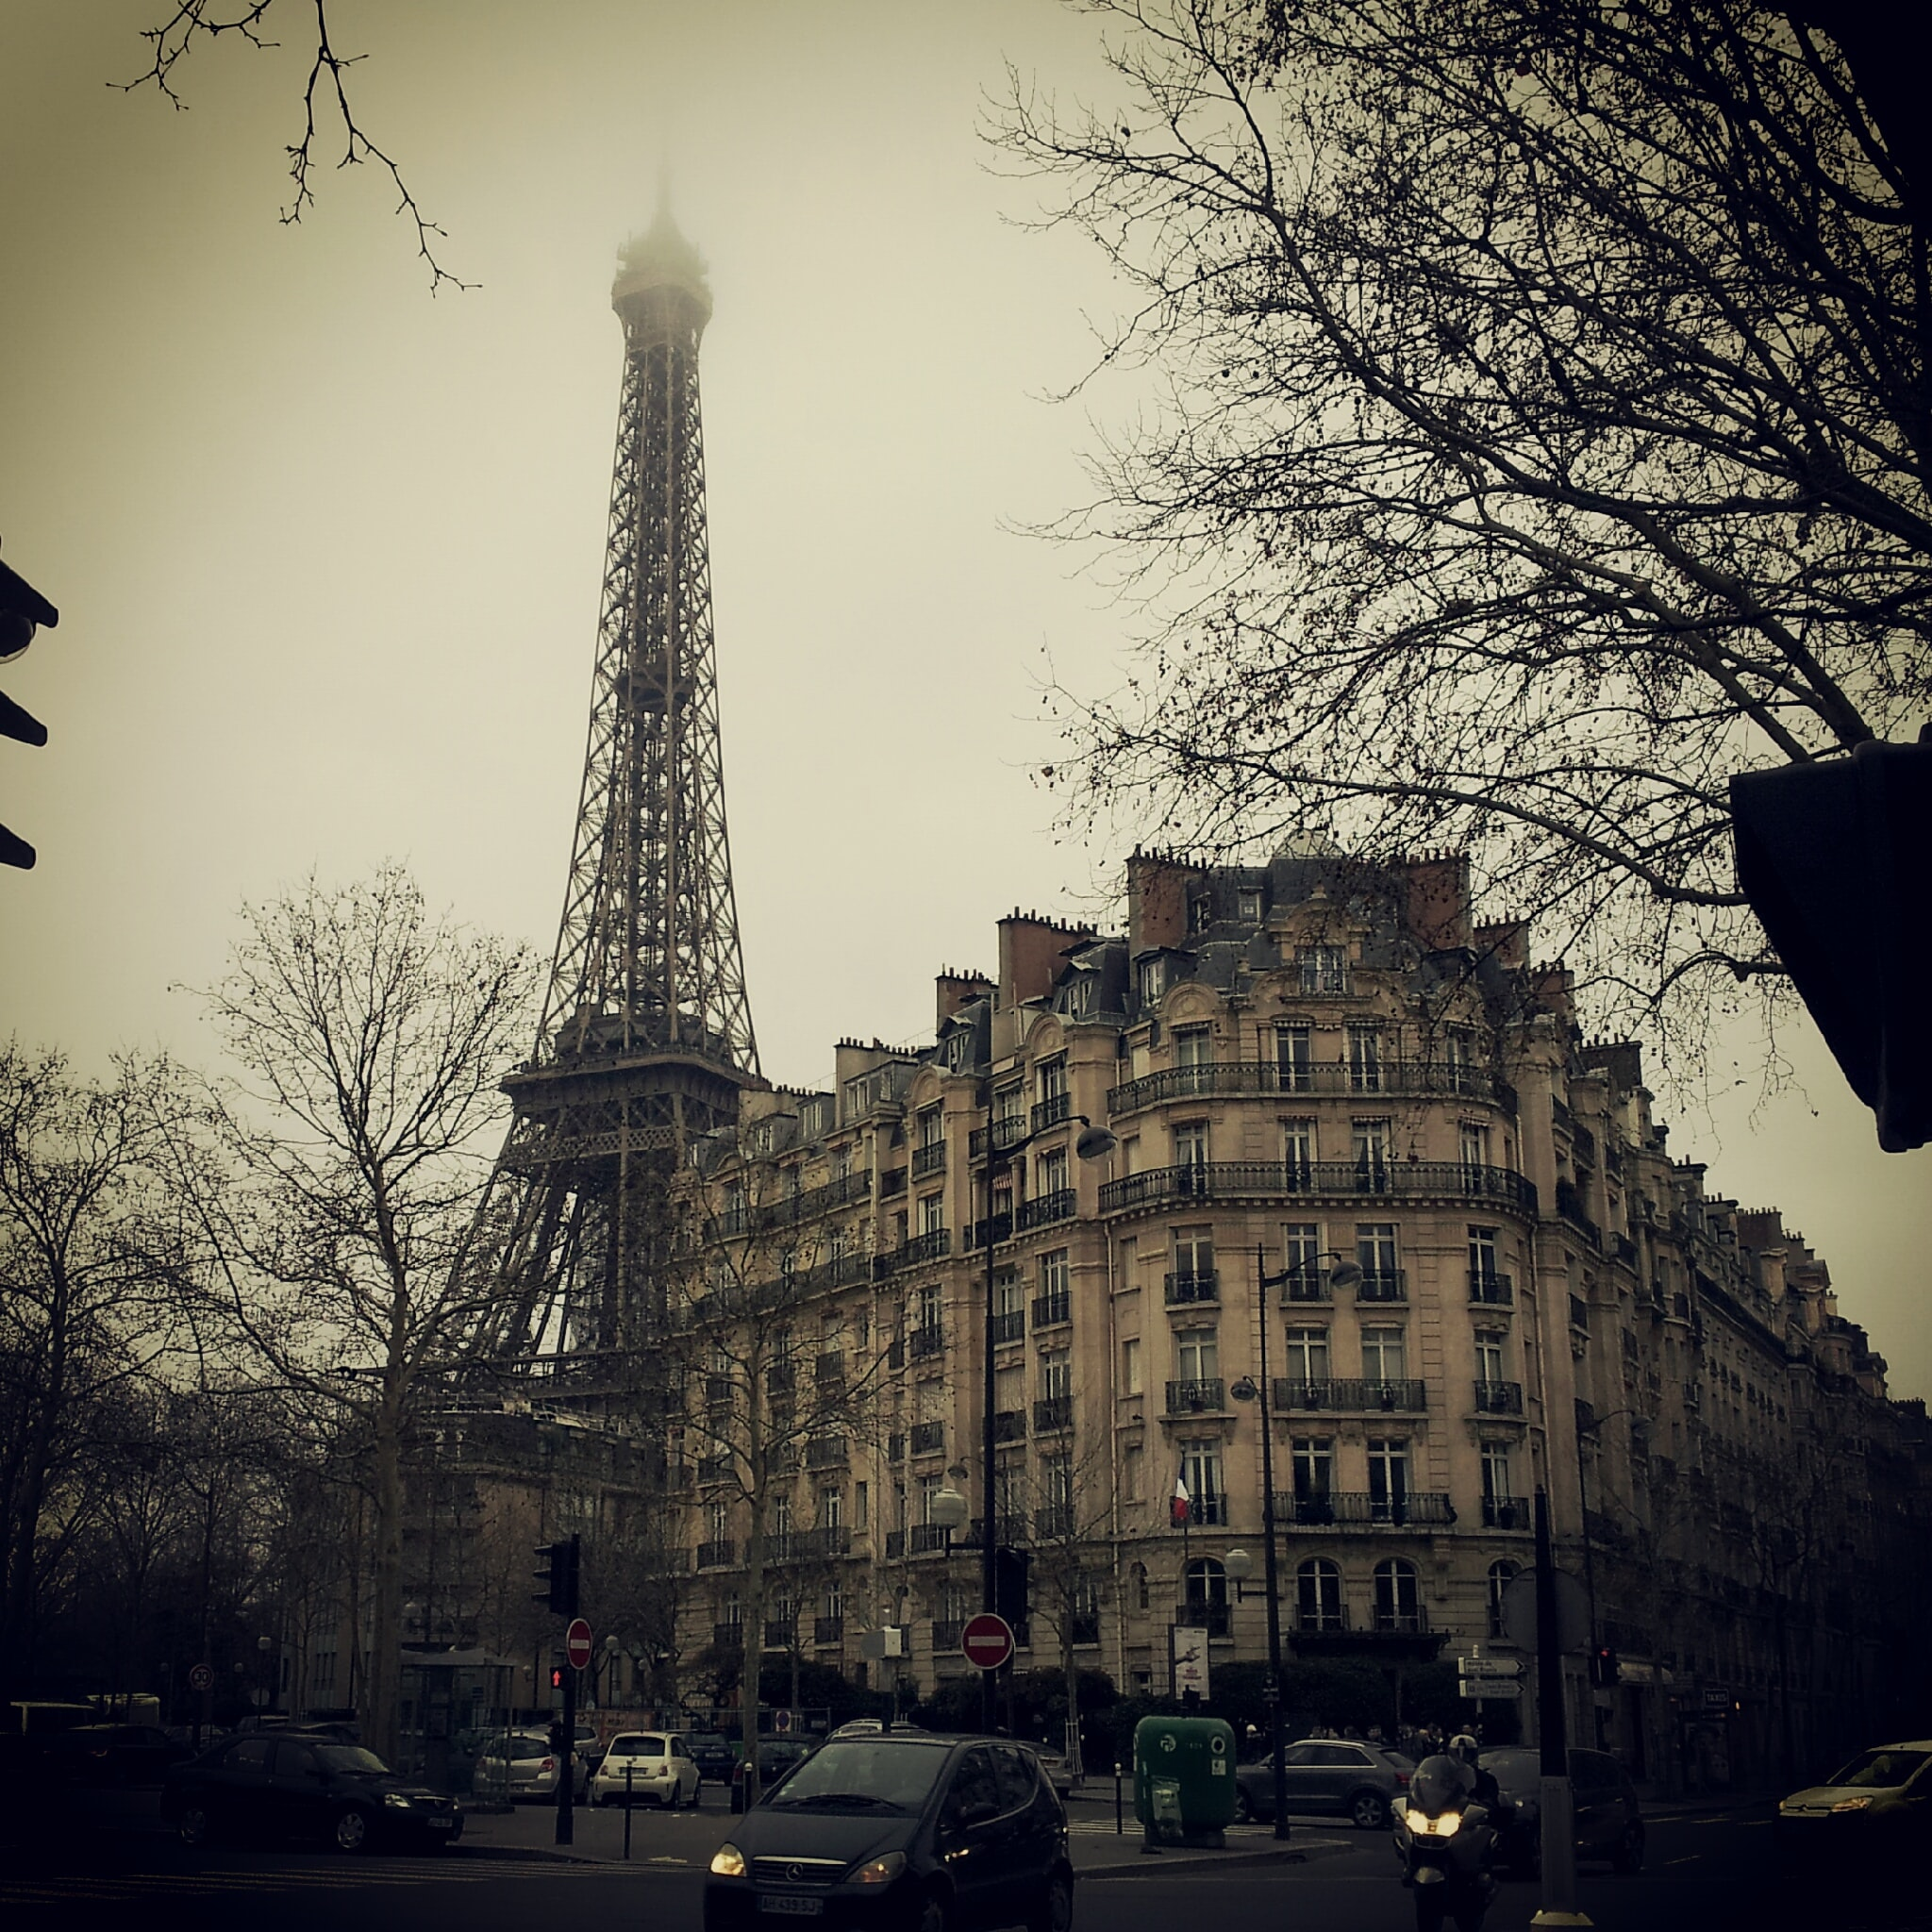 A sepia-toned cloudy view of the Eiffel Tower in Paris from the street